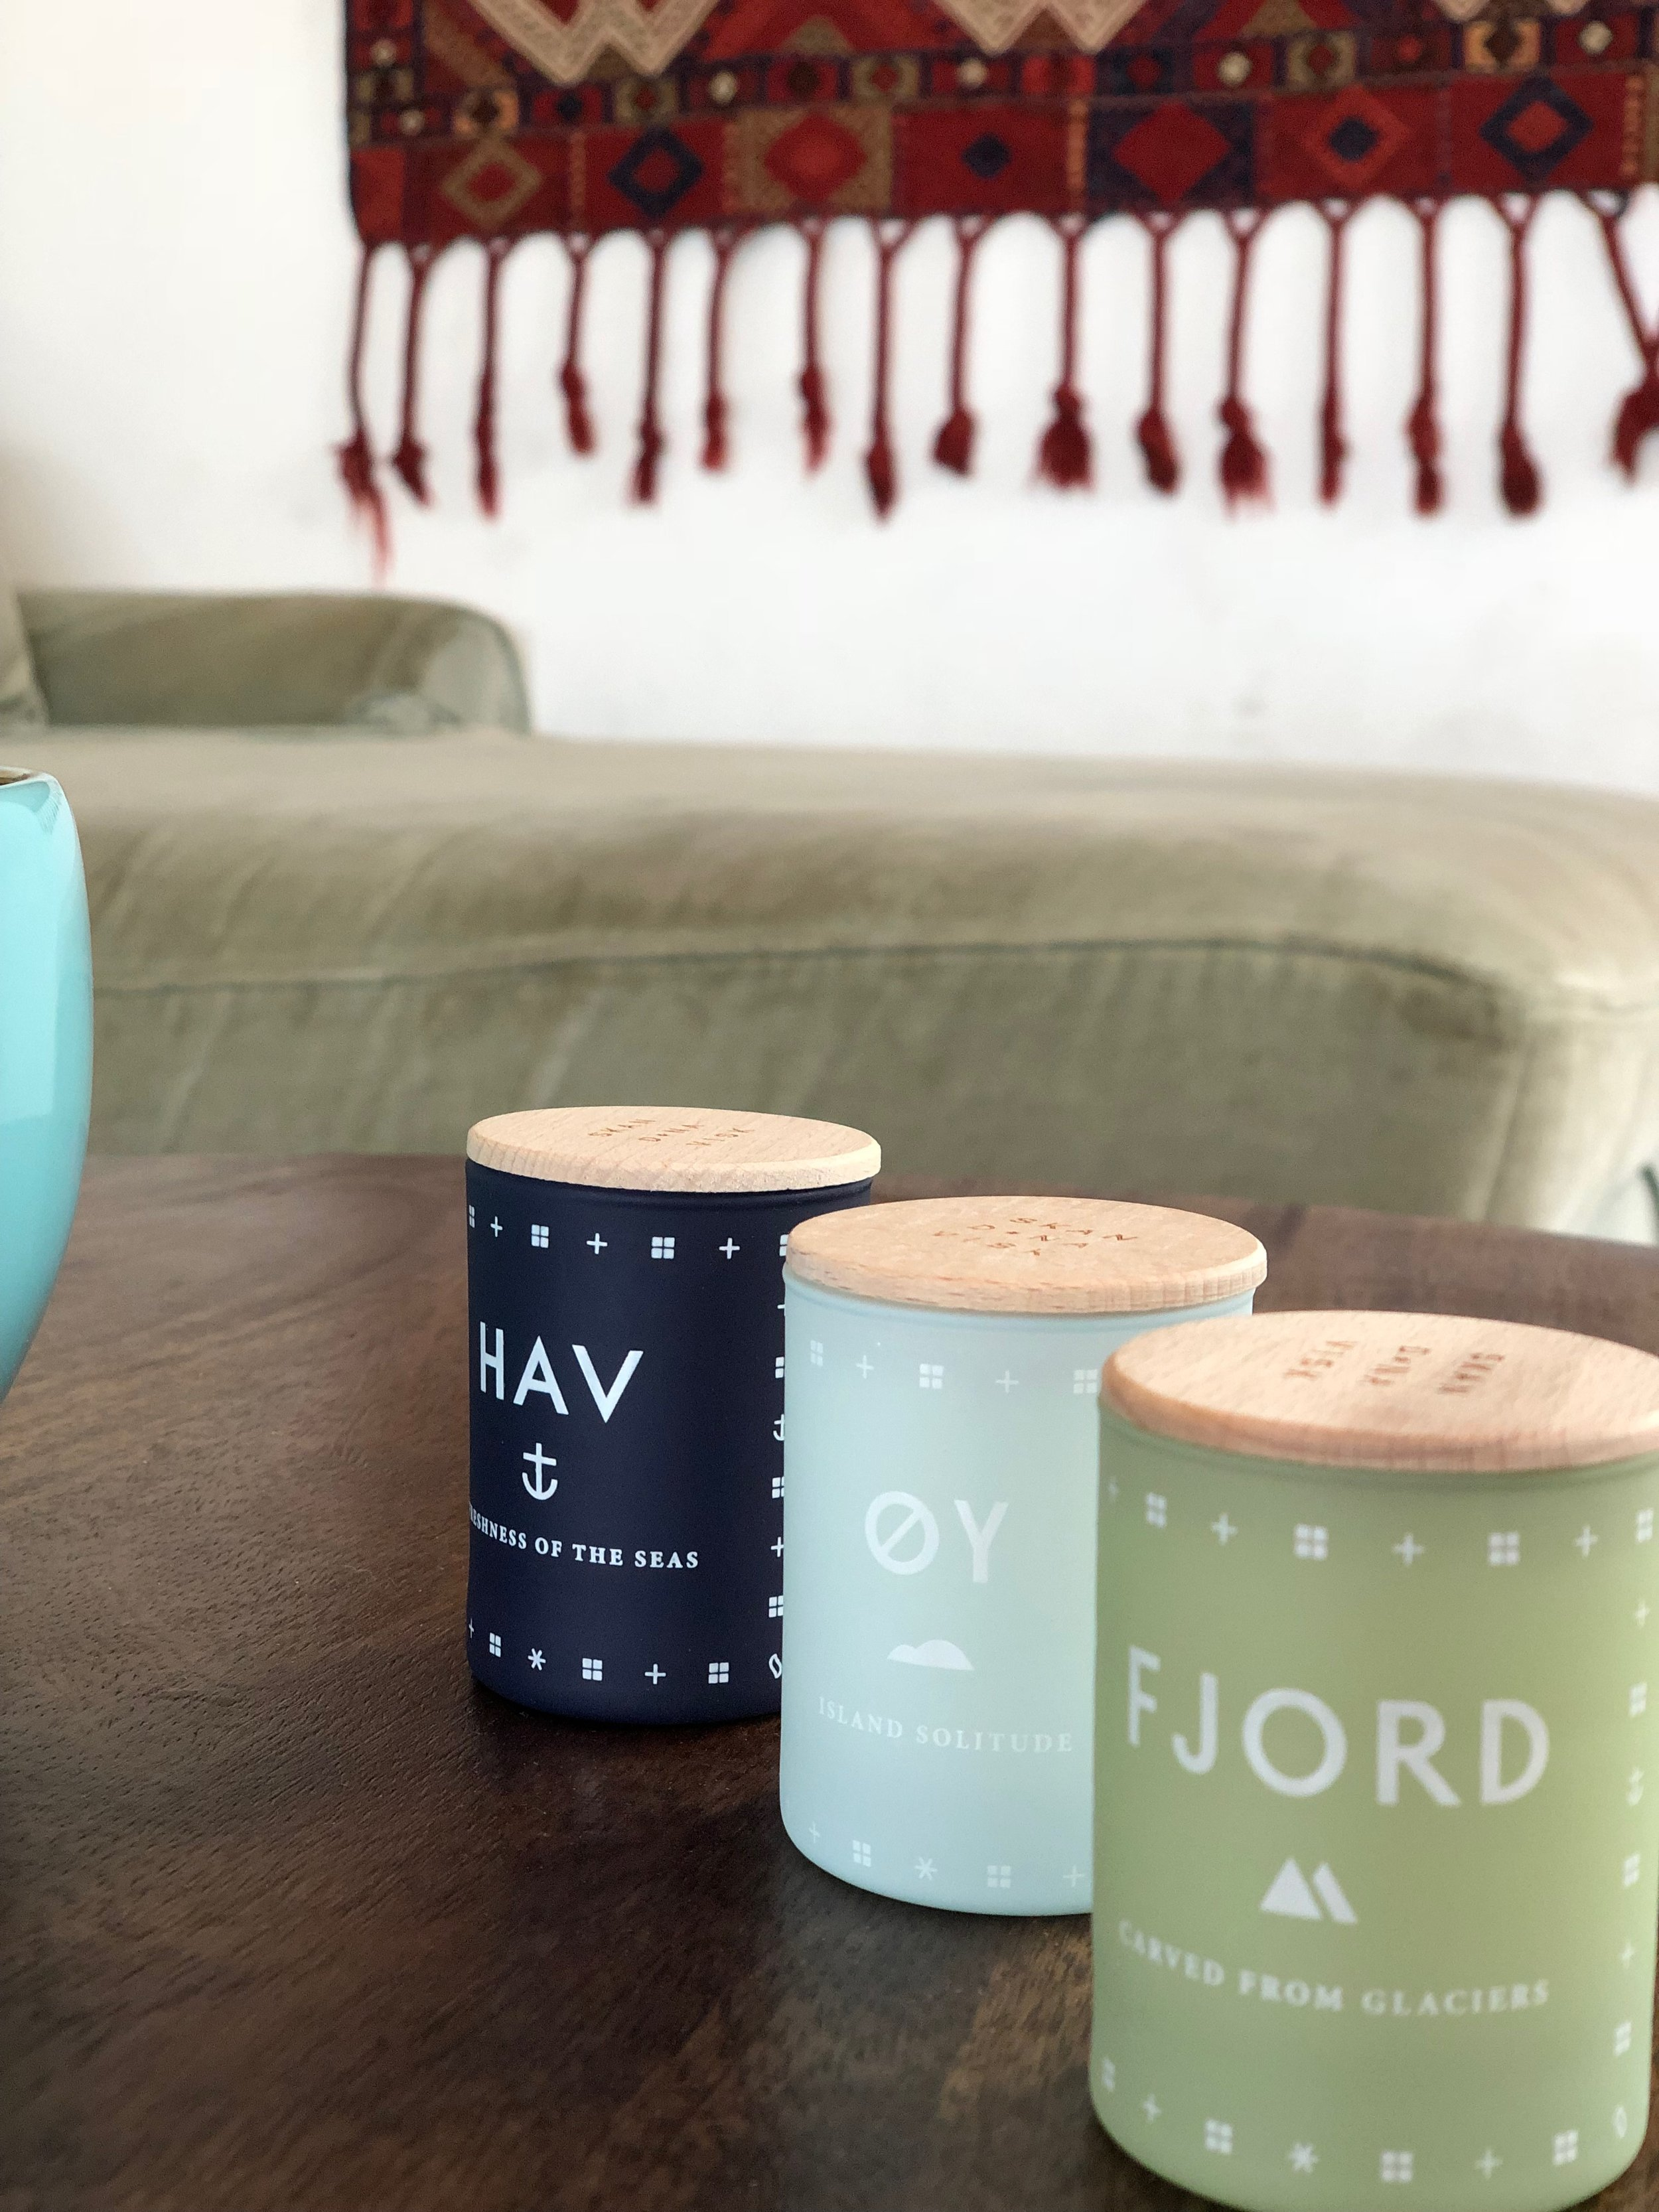 Skog Candles - These vegetable oil candles will change your life for 16 long hours. Disguise the smell of dogs and teenage socks by bringing in the scents of Scandinavia. Have you ever heard someone complain about the way Norwegians smell? Neither have we. Mic drop.